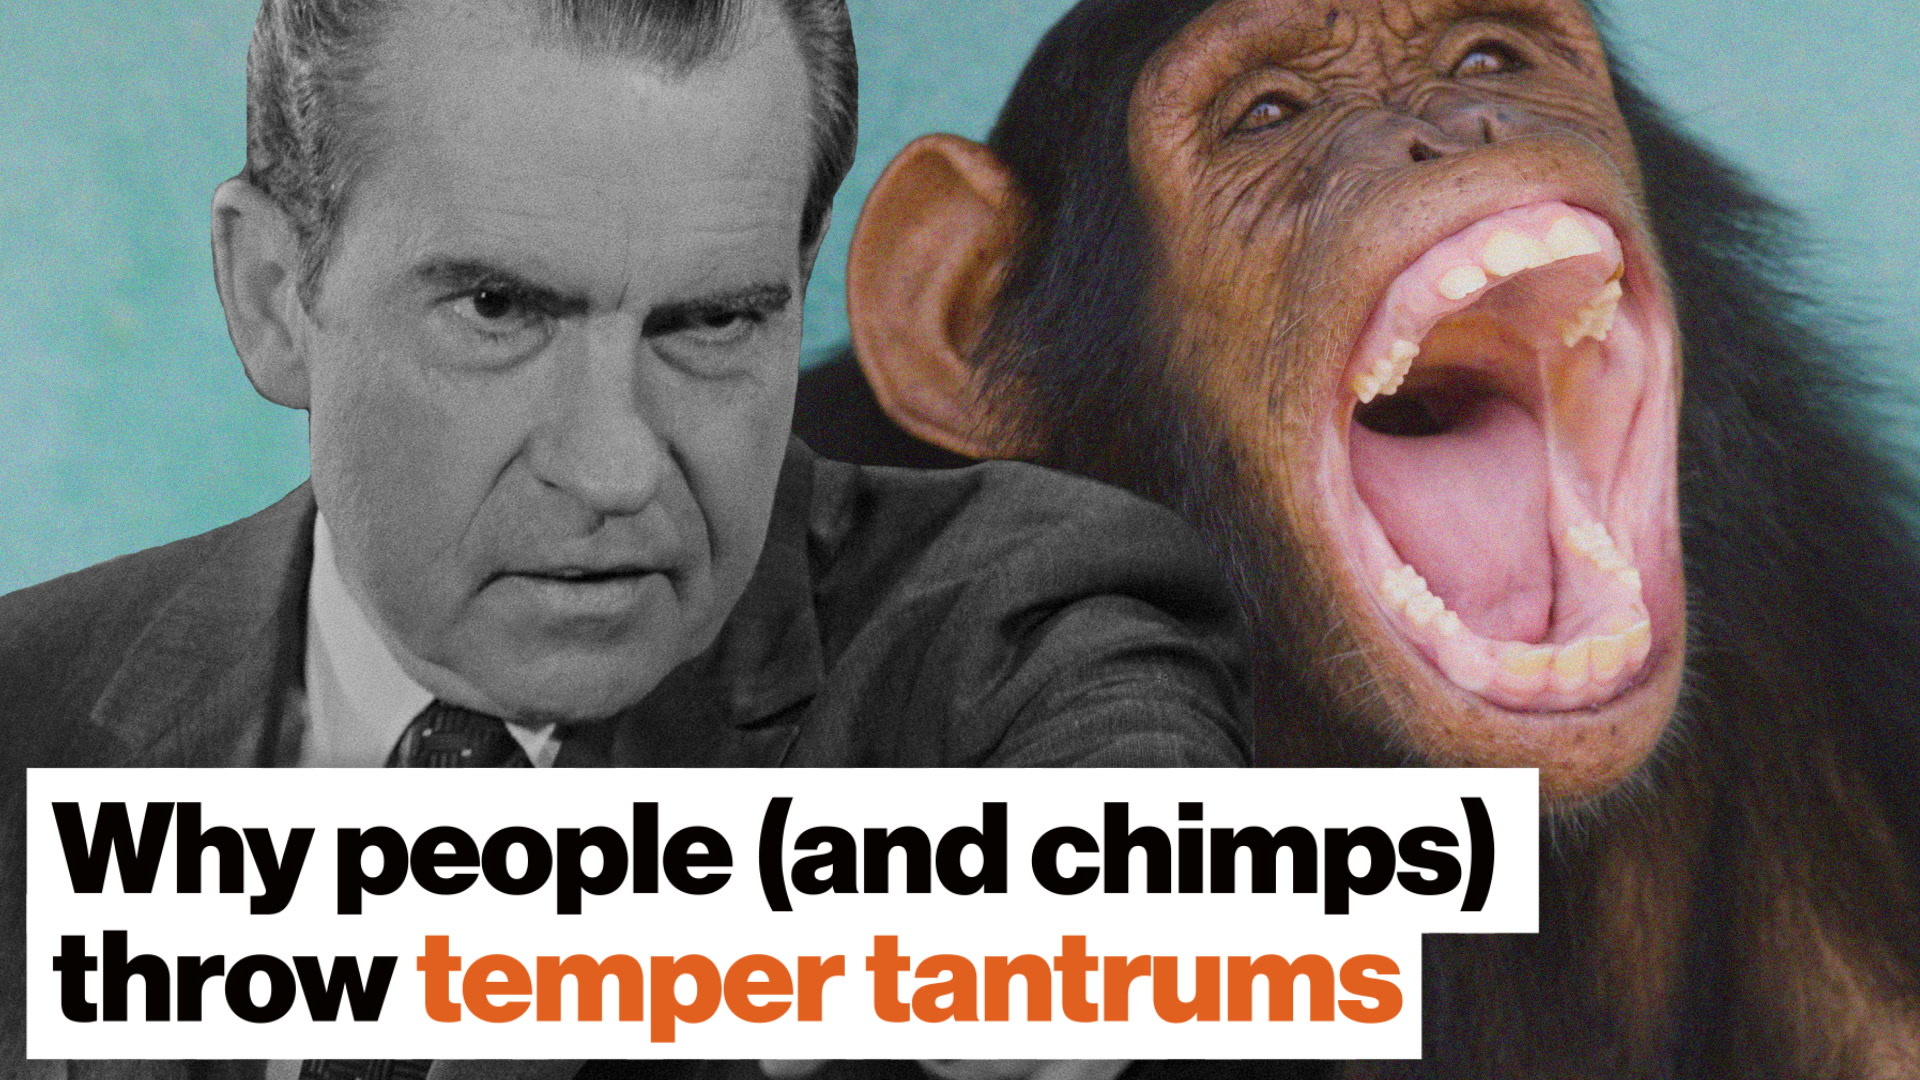 Why people (and chimps) throw temper tantrums